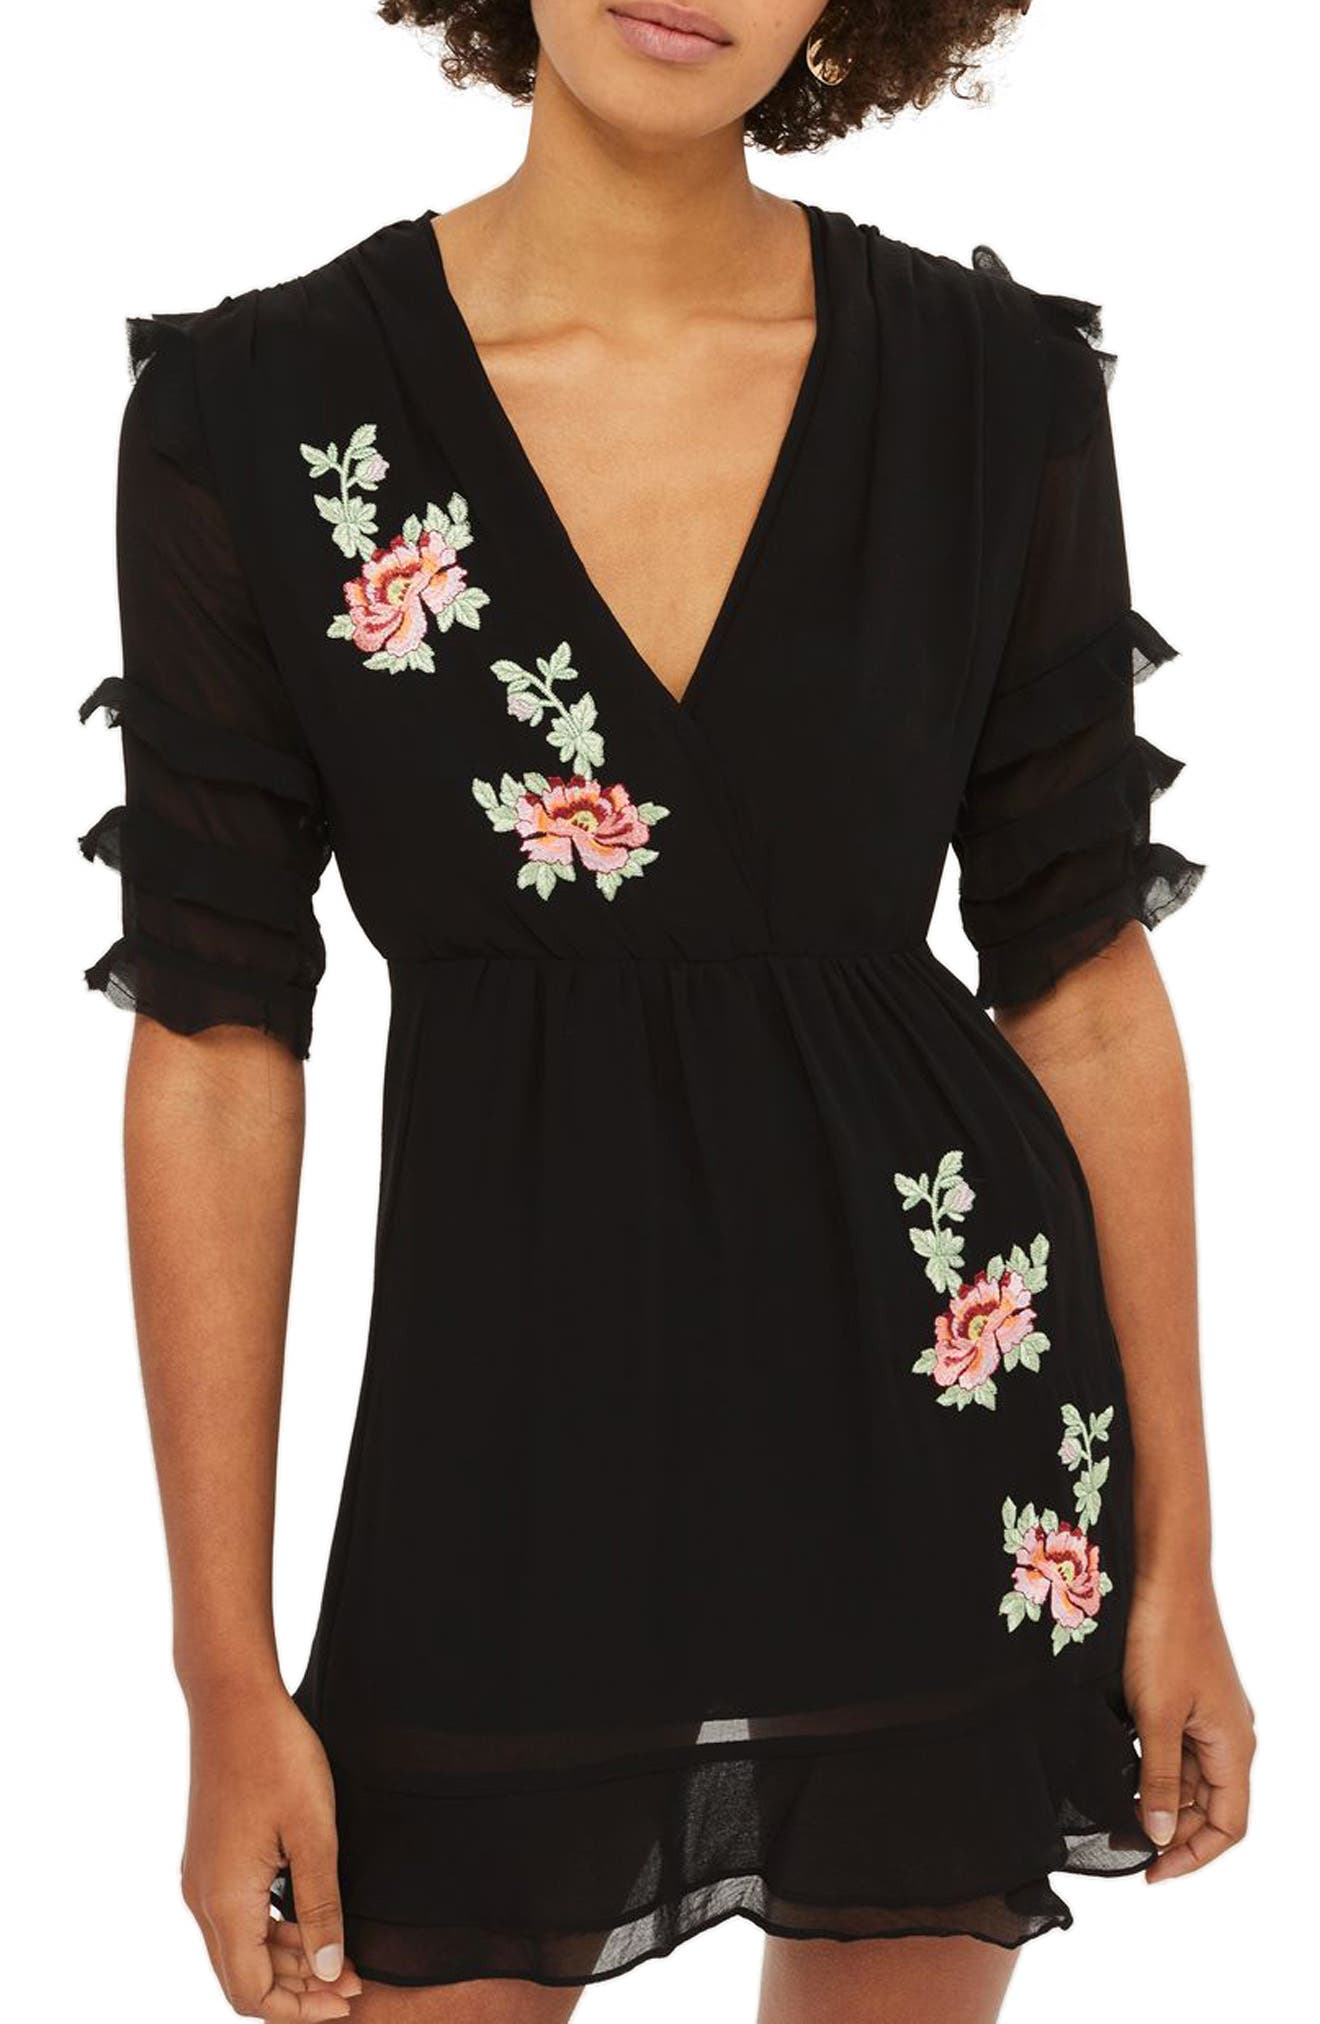 Topshop Embroidered Ruffle Detail Dress